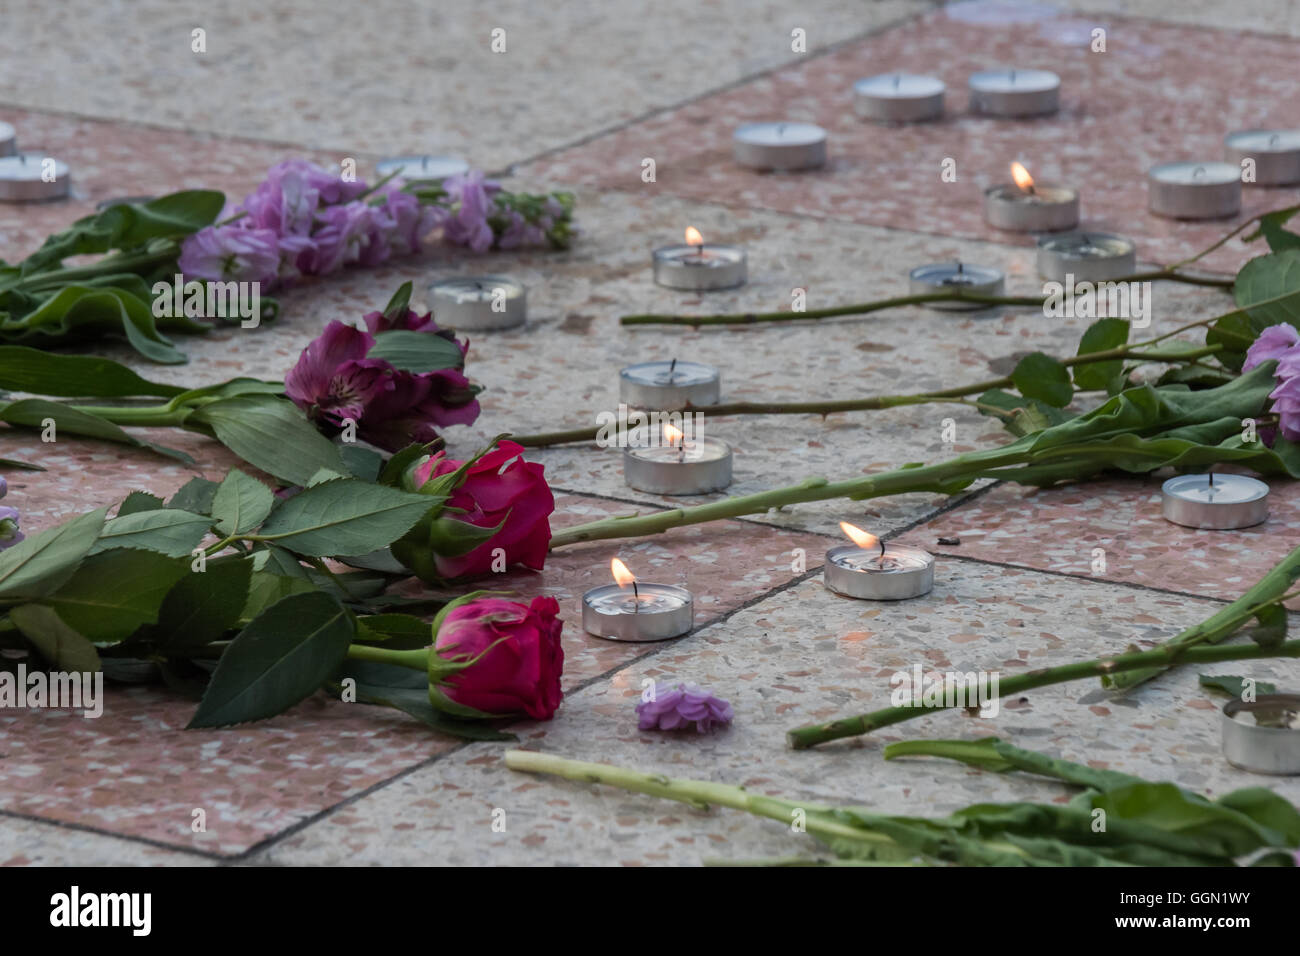 London, UK. 5th Aug, 2016. Sisters Uncut set up flowers and candles in Altab Ali Park in East London to commemorate - Stock Image